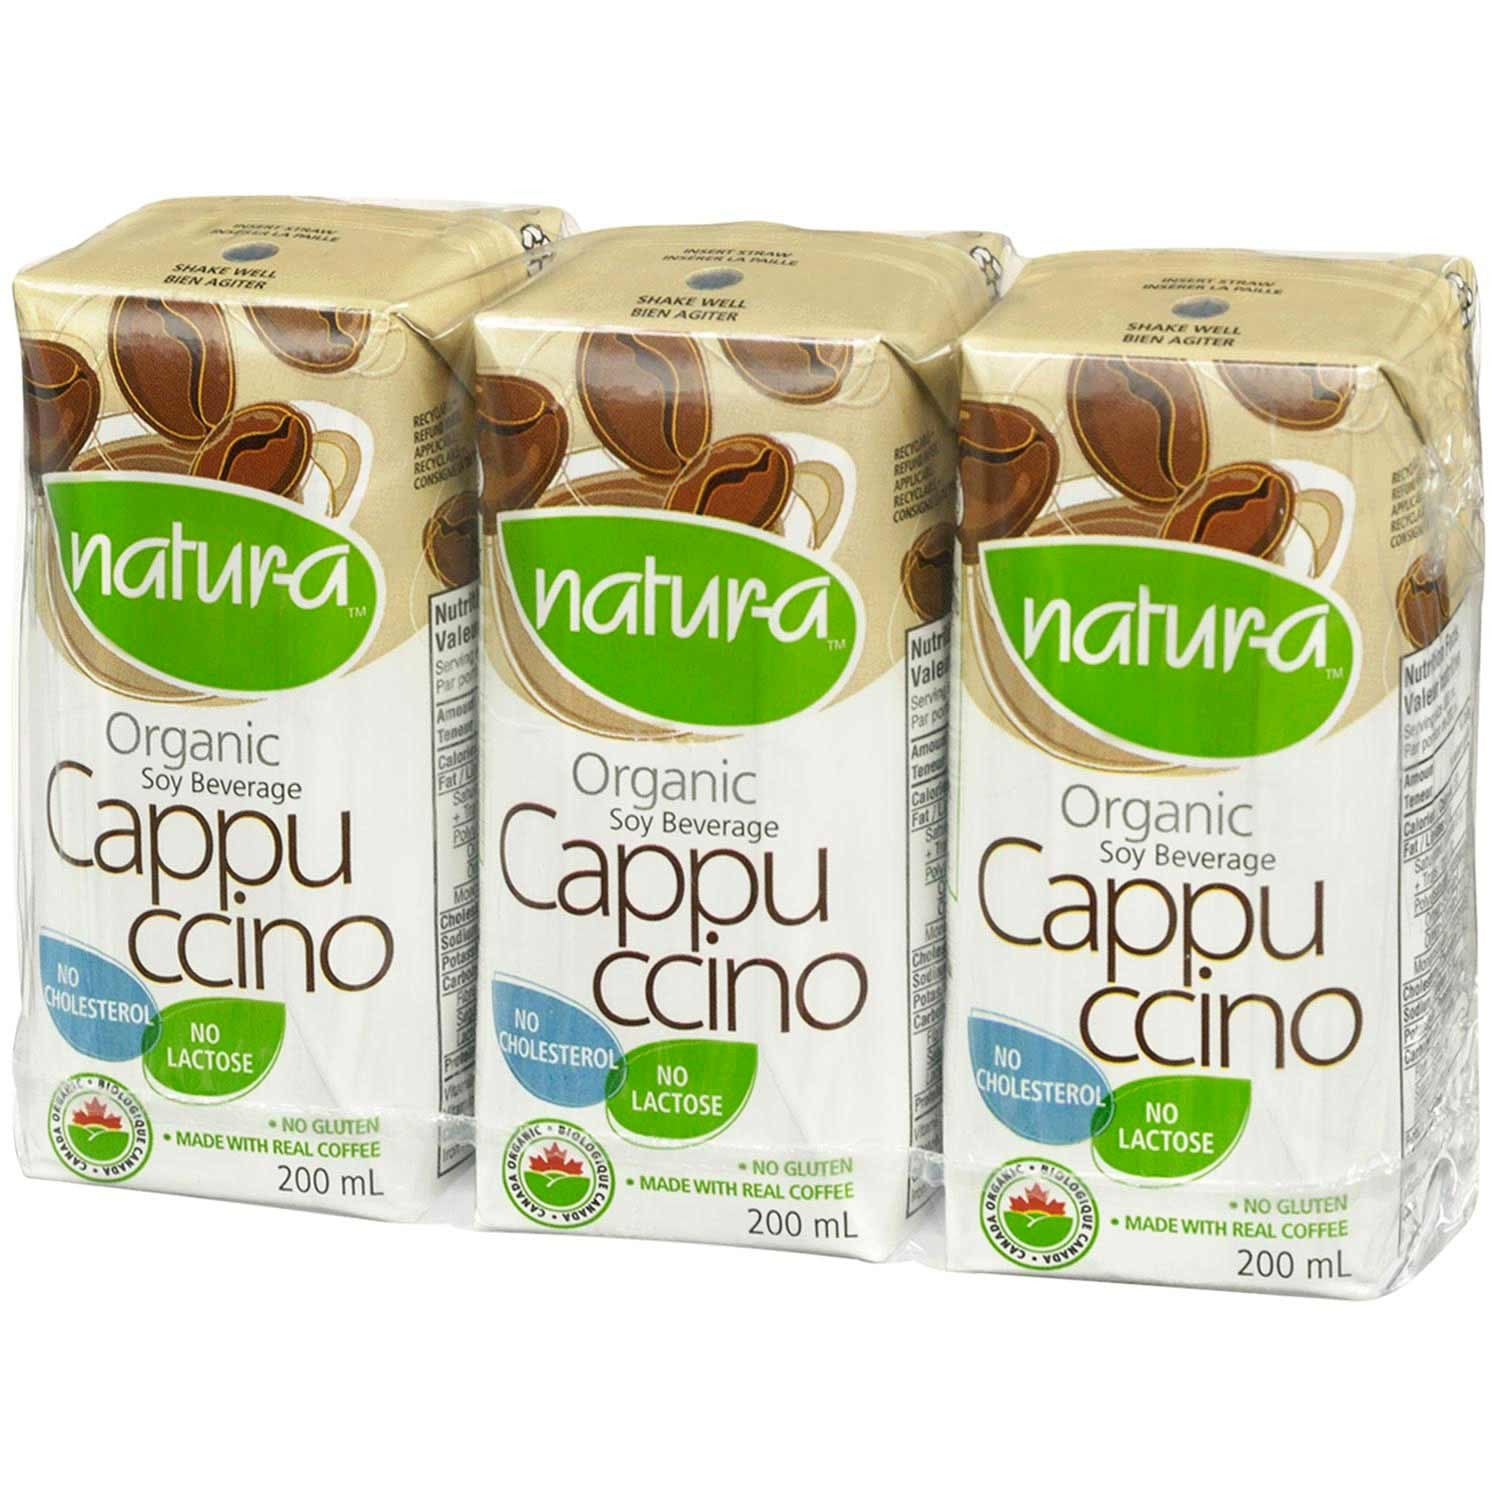 Natur-a Enriched Soy Beverage - Cappuccino (Organic), 200 ml.-NaturesWisdom